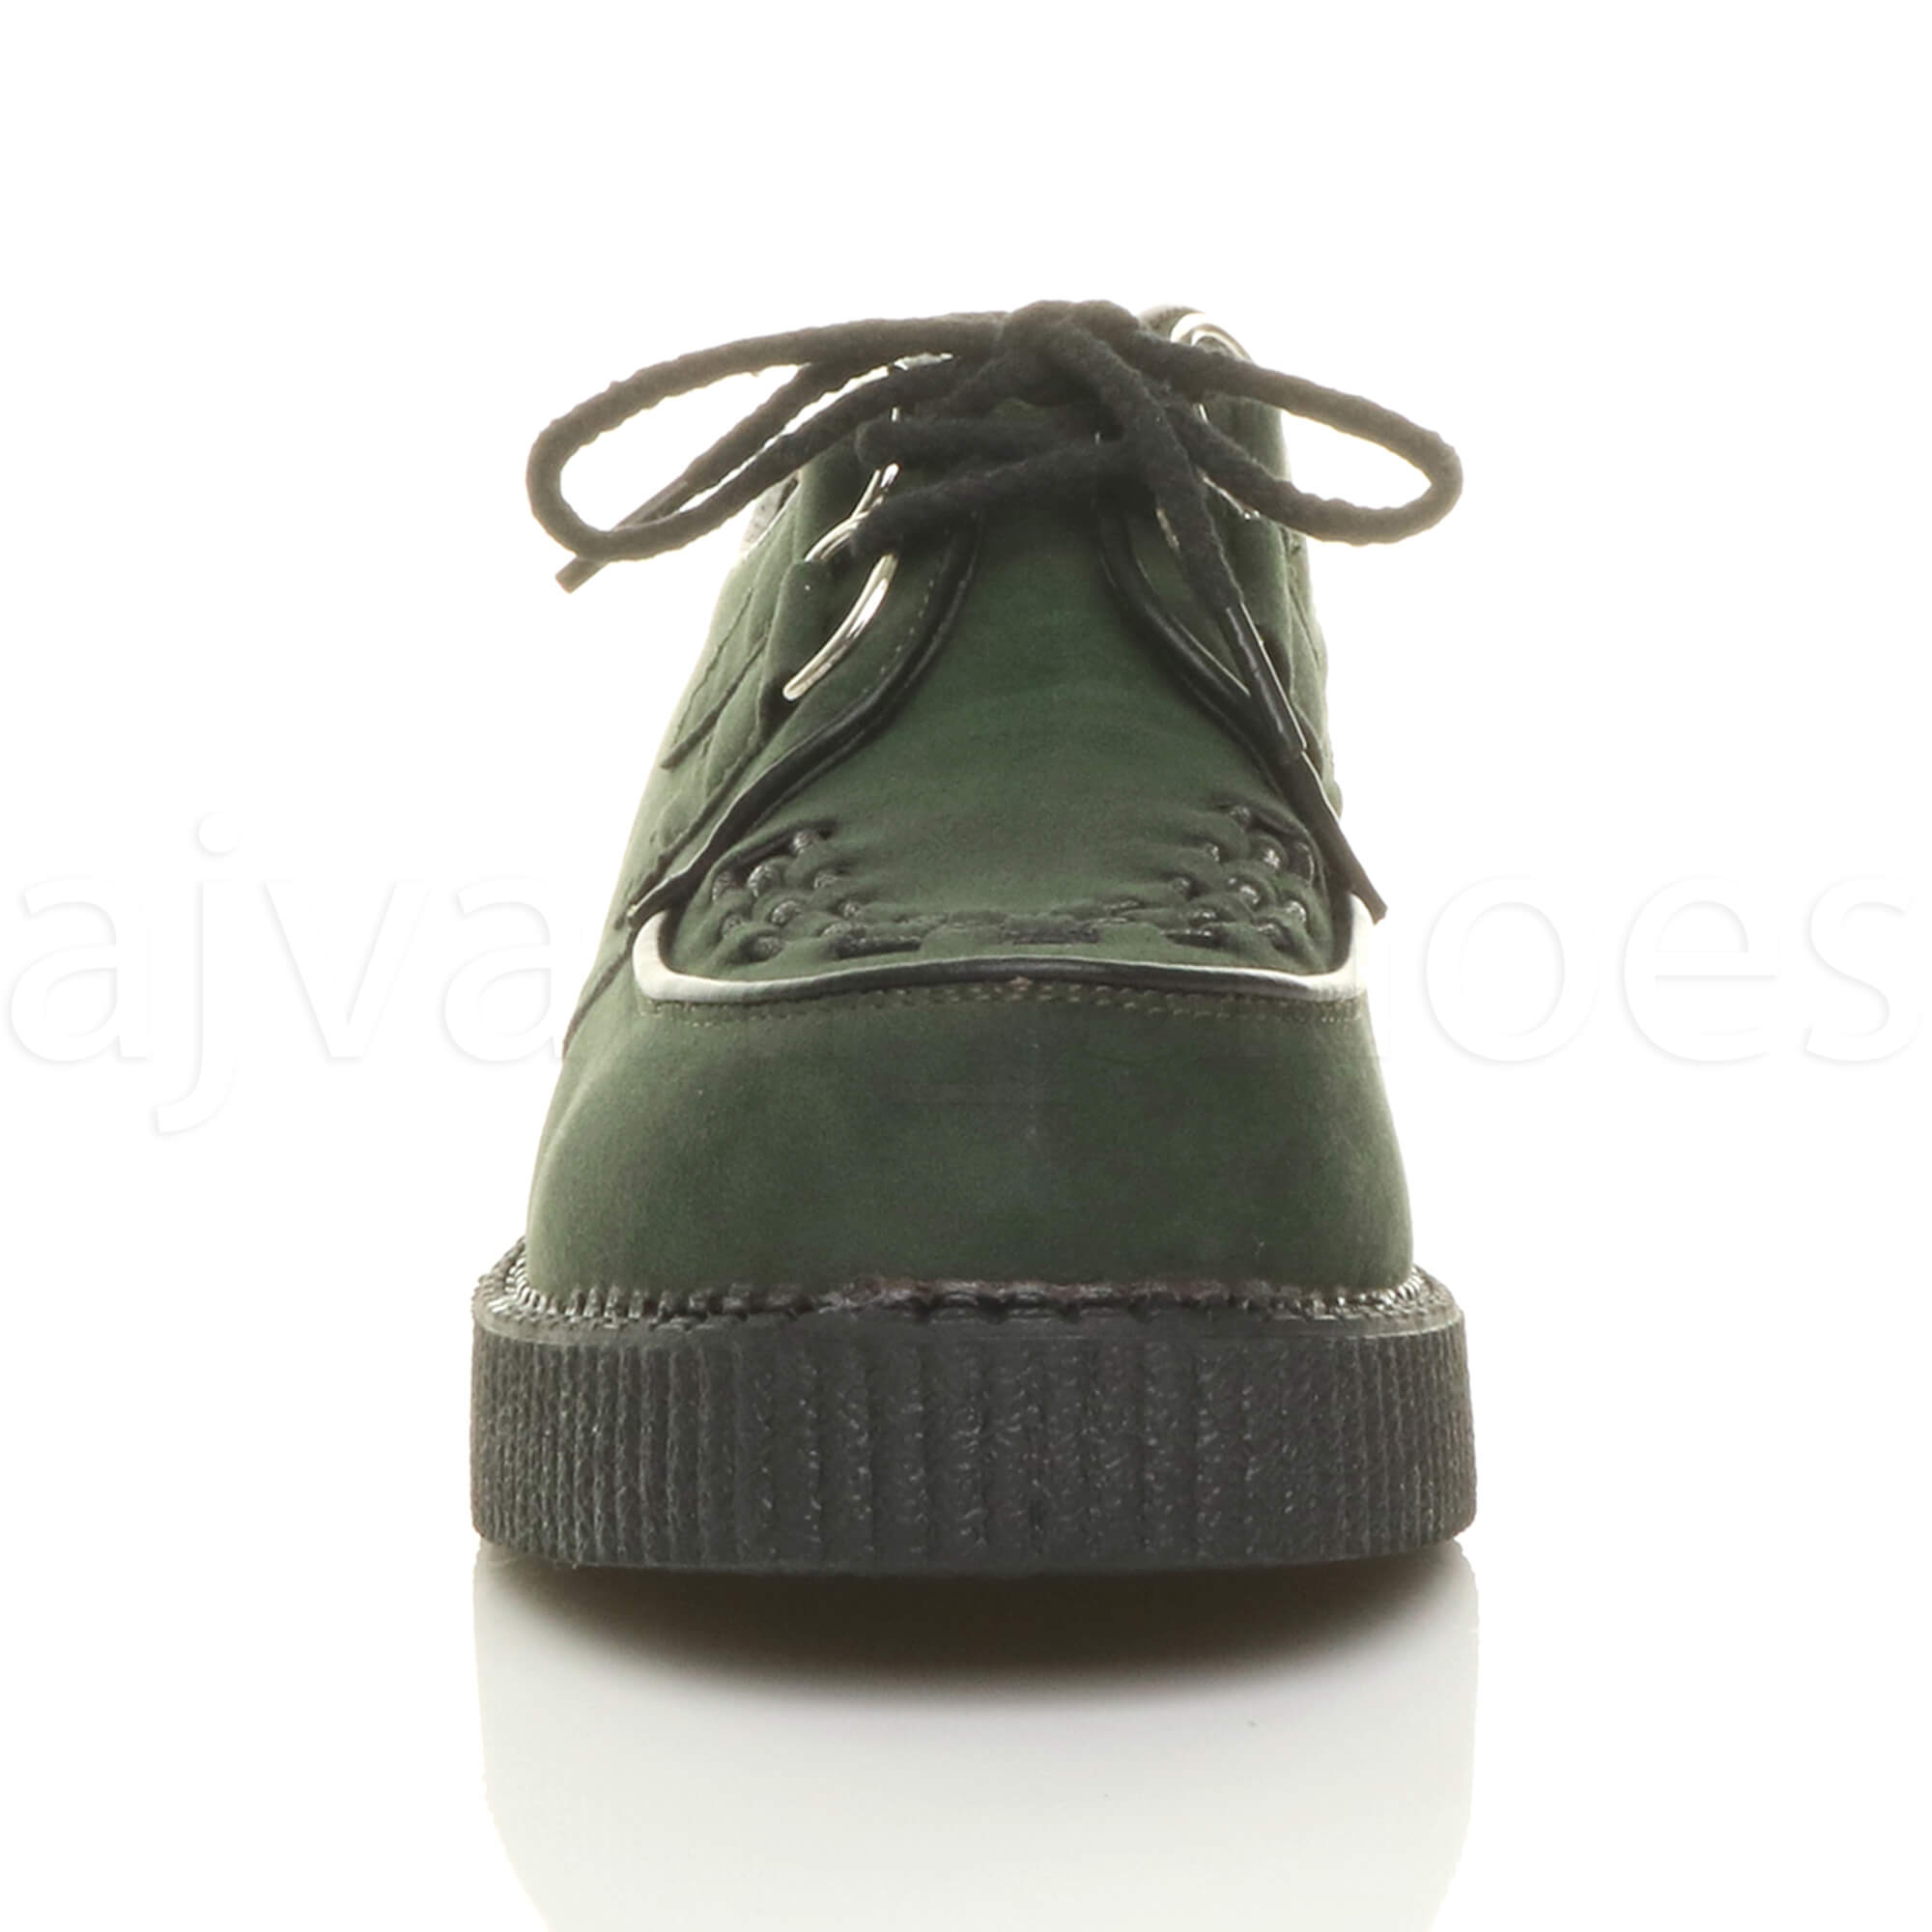 MENS-PLATFORM-WEDGE-LACE-UP-GOTH-PUNK-BROTHEL-CREEPERS-BEETLE-CRUSHERS-SHOES thumbnail 27